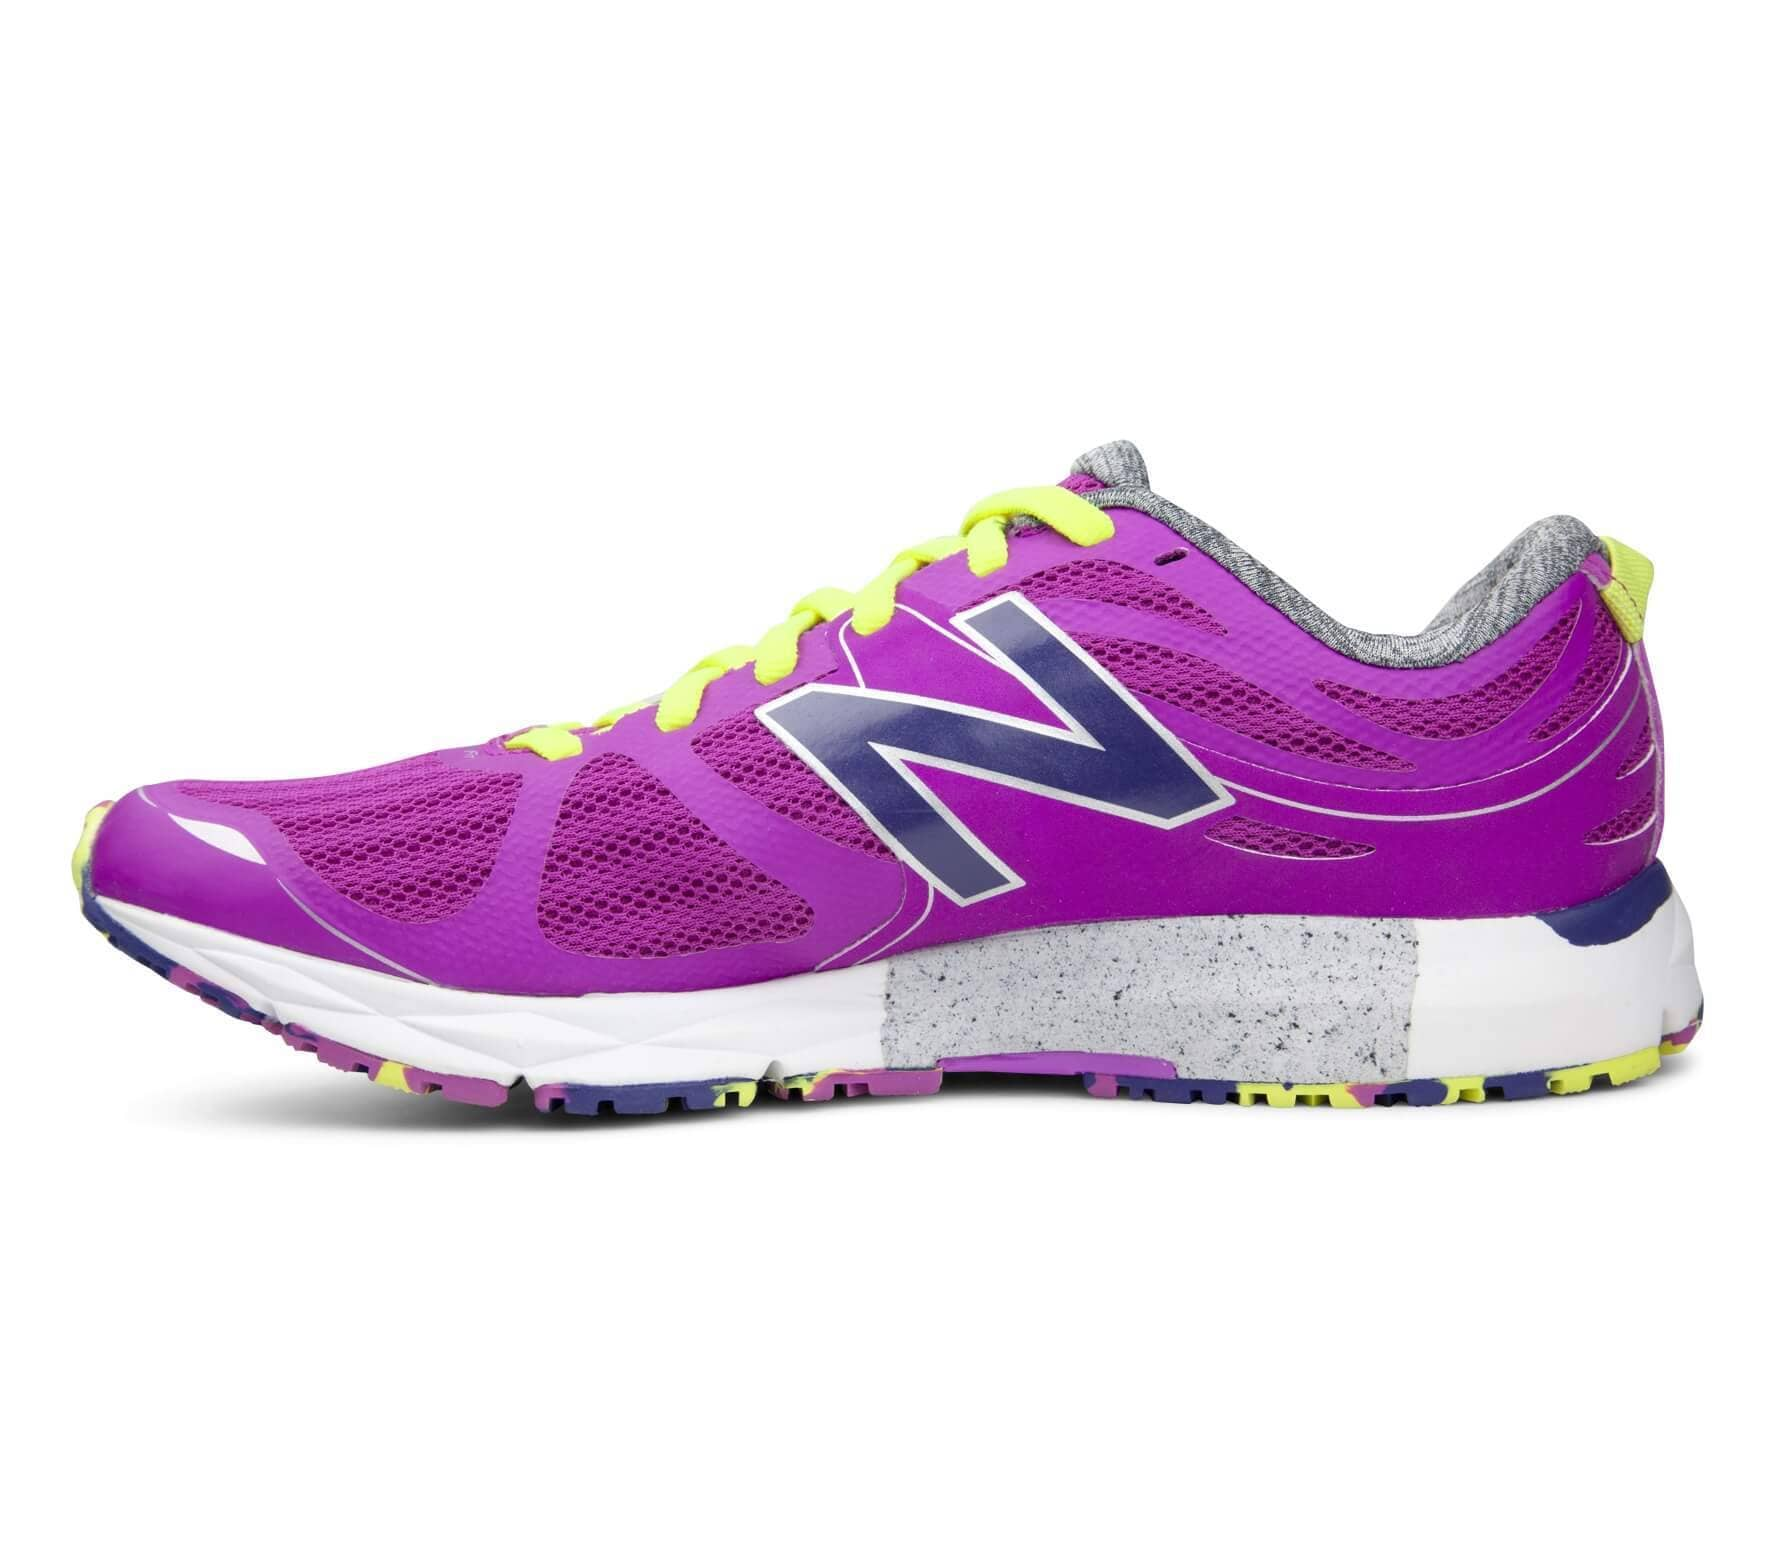 new balance nbx 1500 v2 women 39 s running shoes pink white buy it at the keller sports. Black Bedroom Furniture Sets. Home Design Ideas